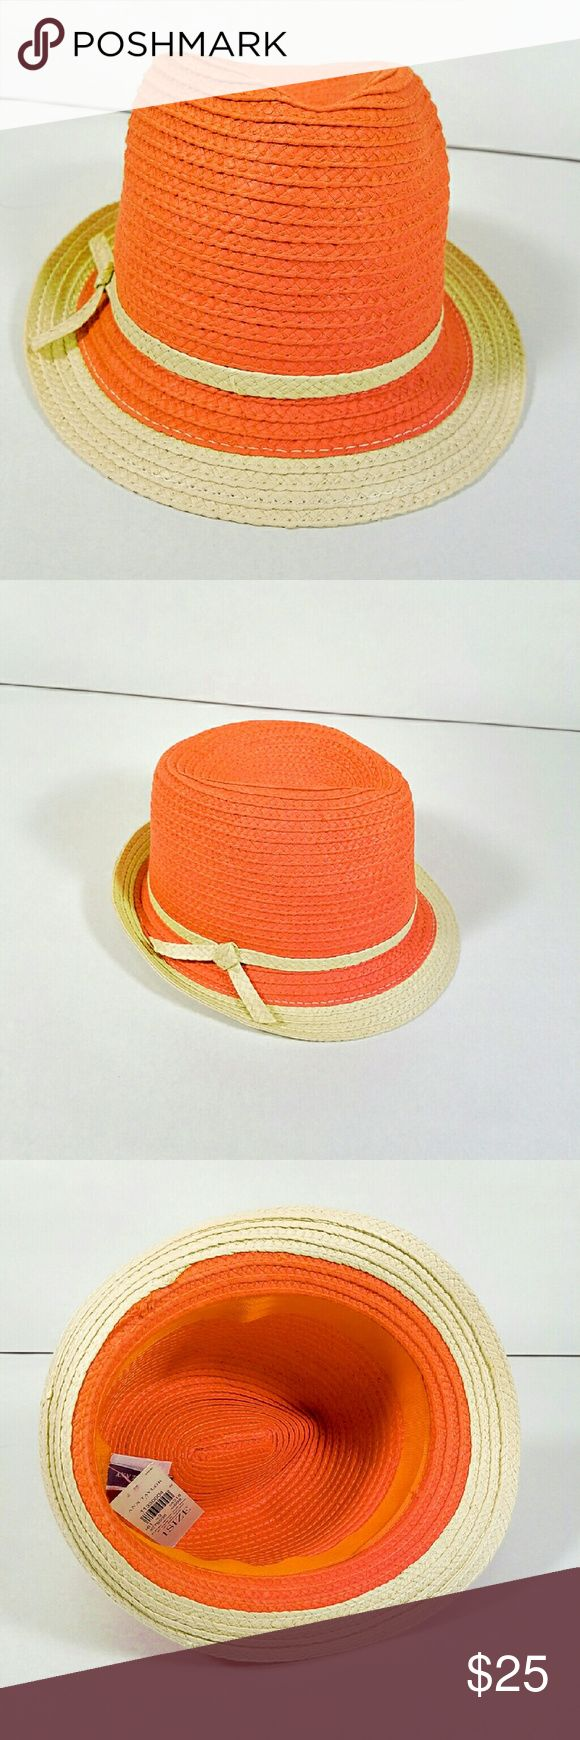 Ann Taylor Raffia Fedora Orange Hat. New with tags. Ann Taylor Accessories Hats